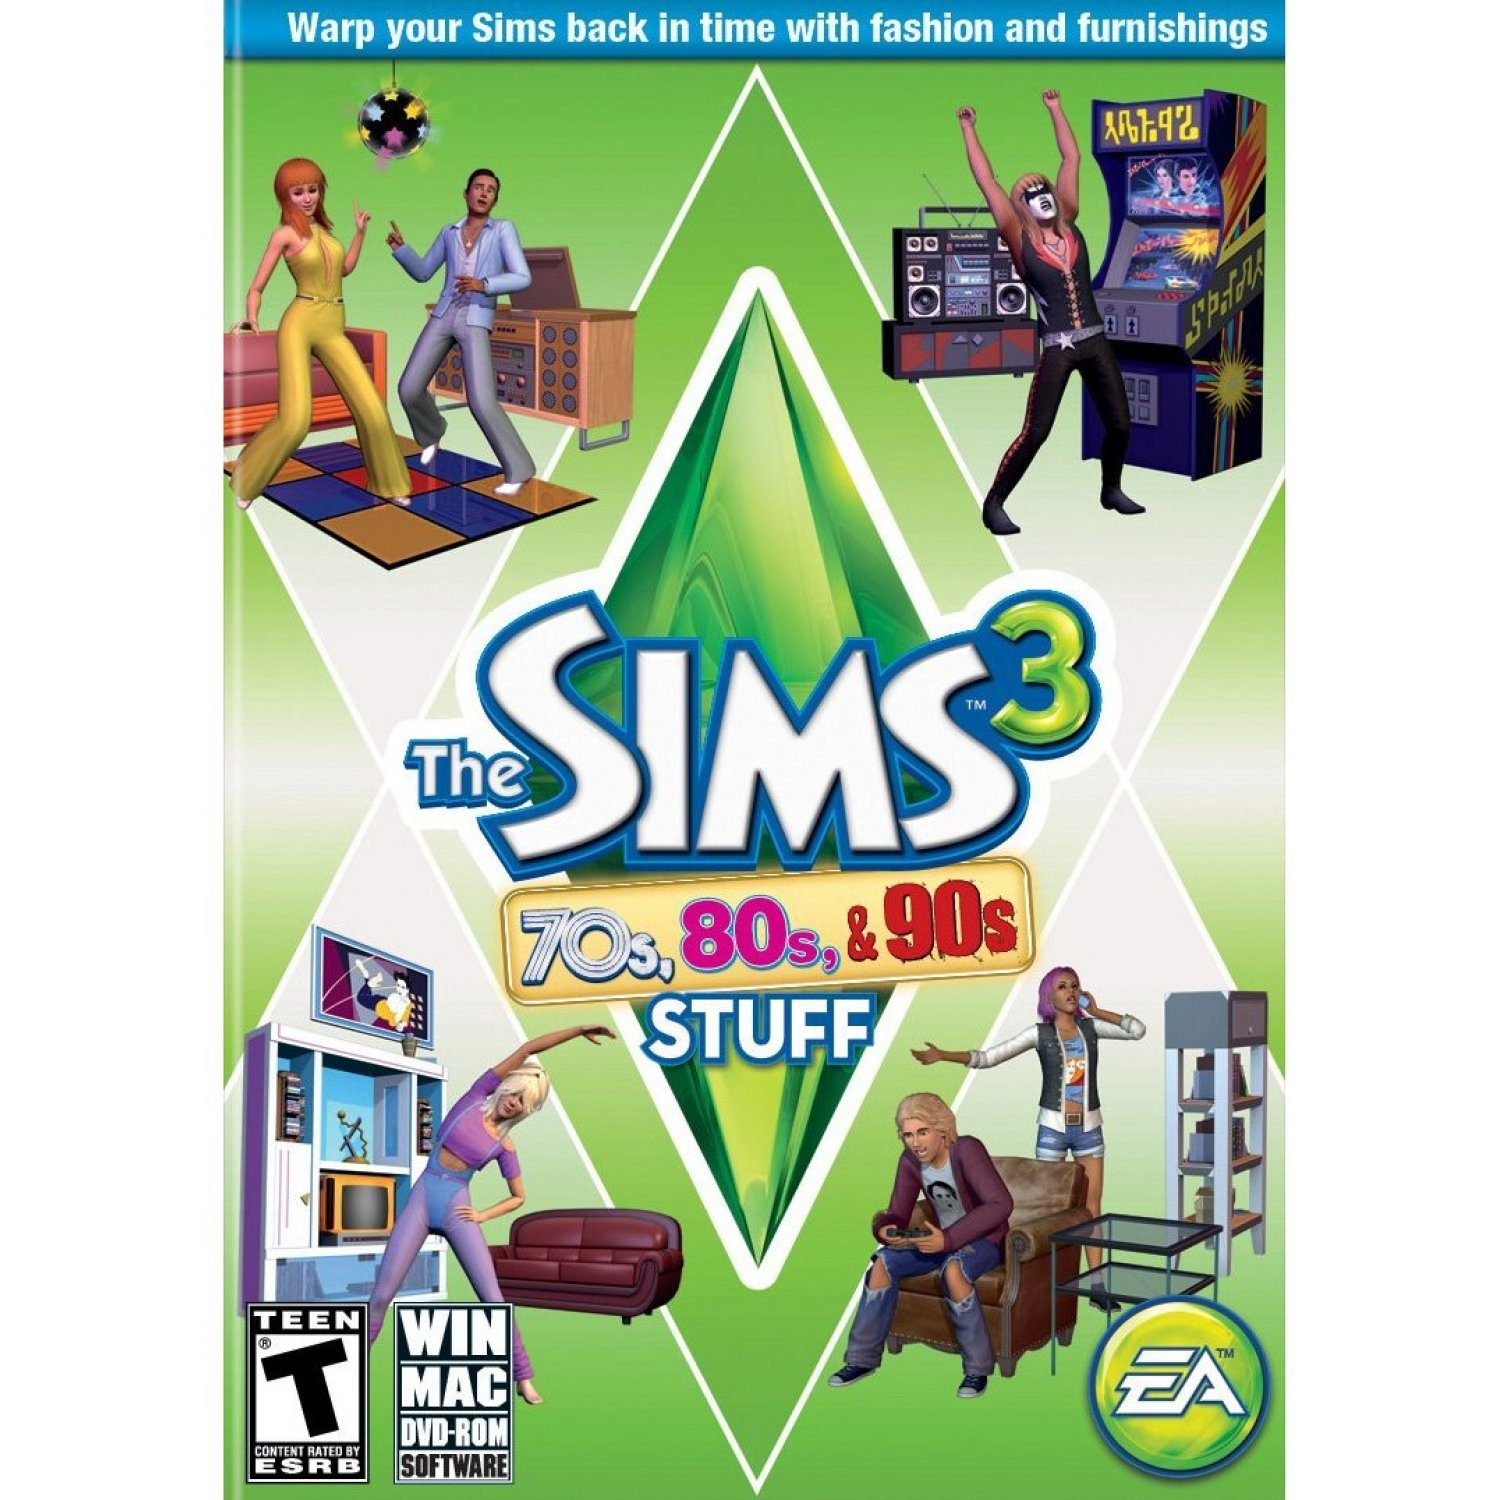 The Sims 3: 70s, 80s, & 90s Stuff Pack (DVD-ROM)